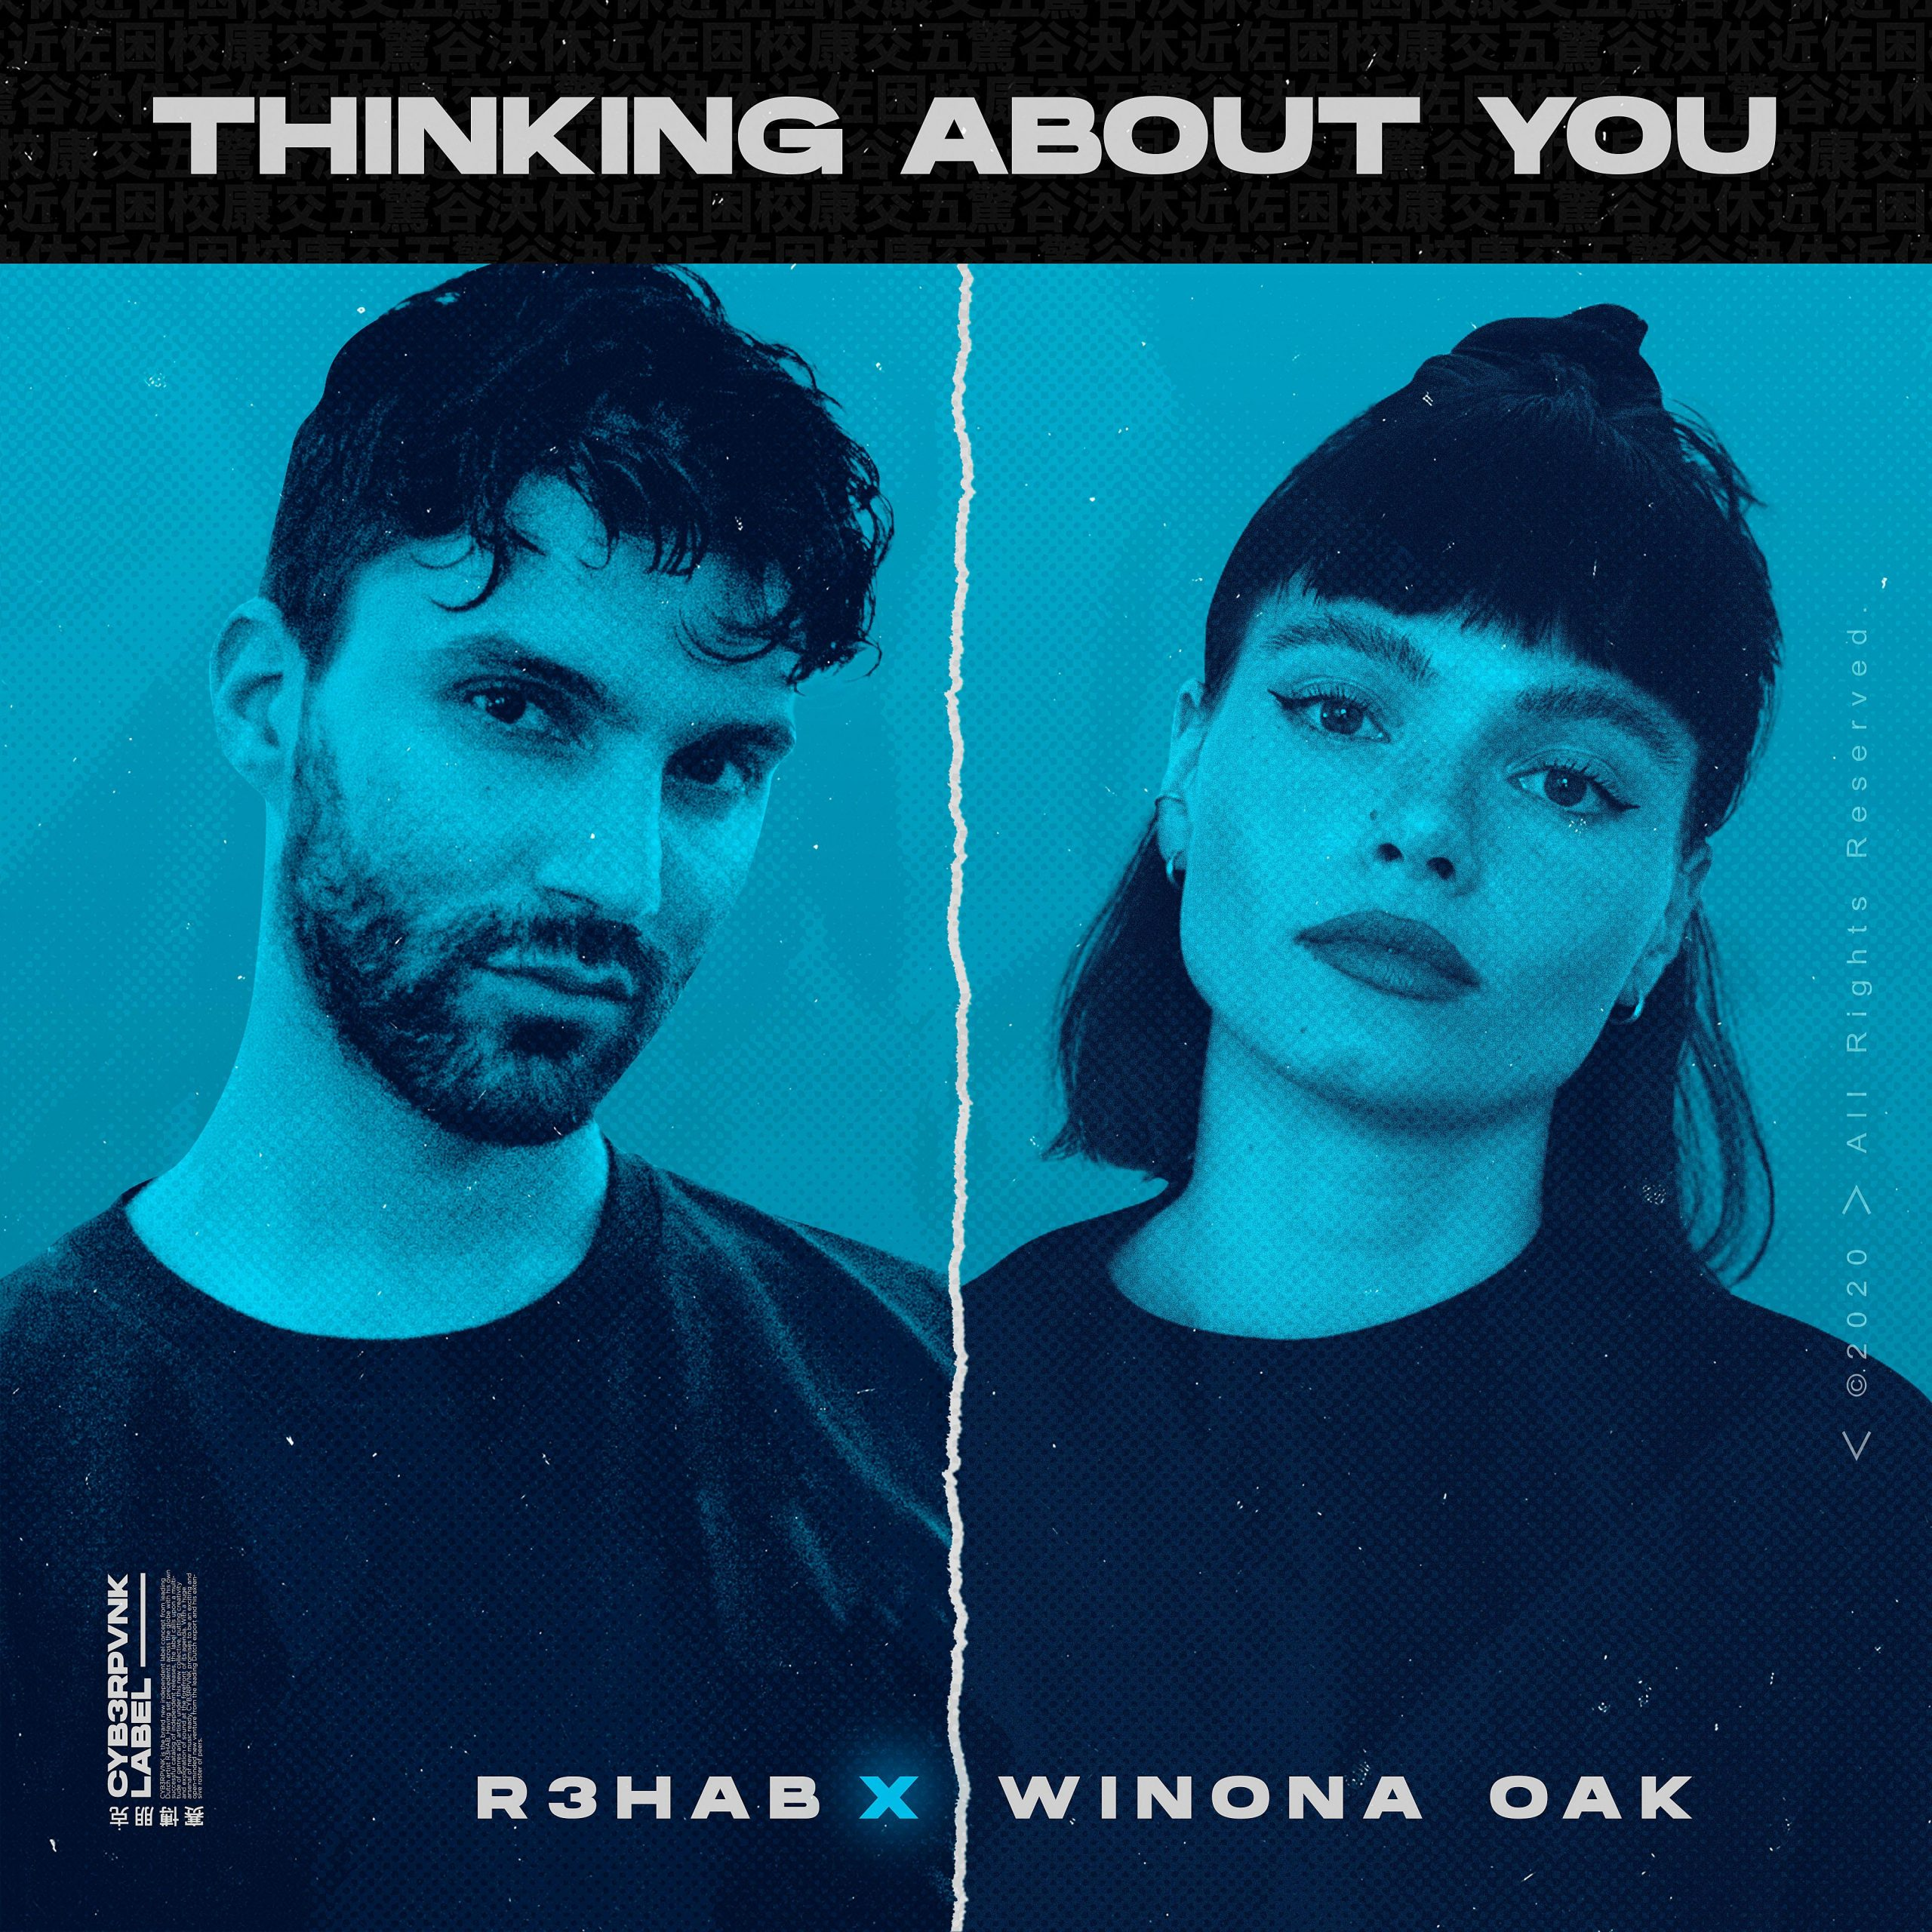 [Cover] R3HAB & Winona Oak – Thinking About You